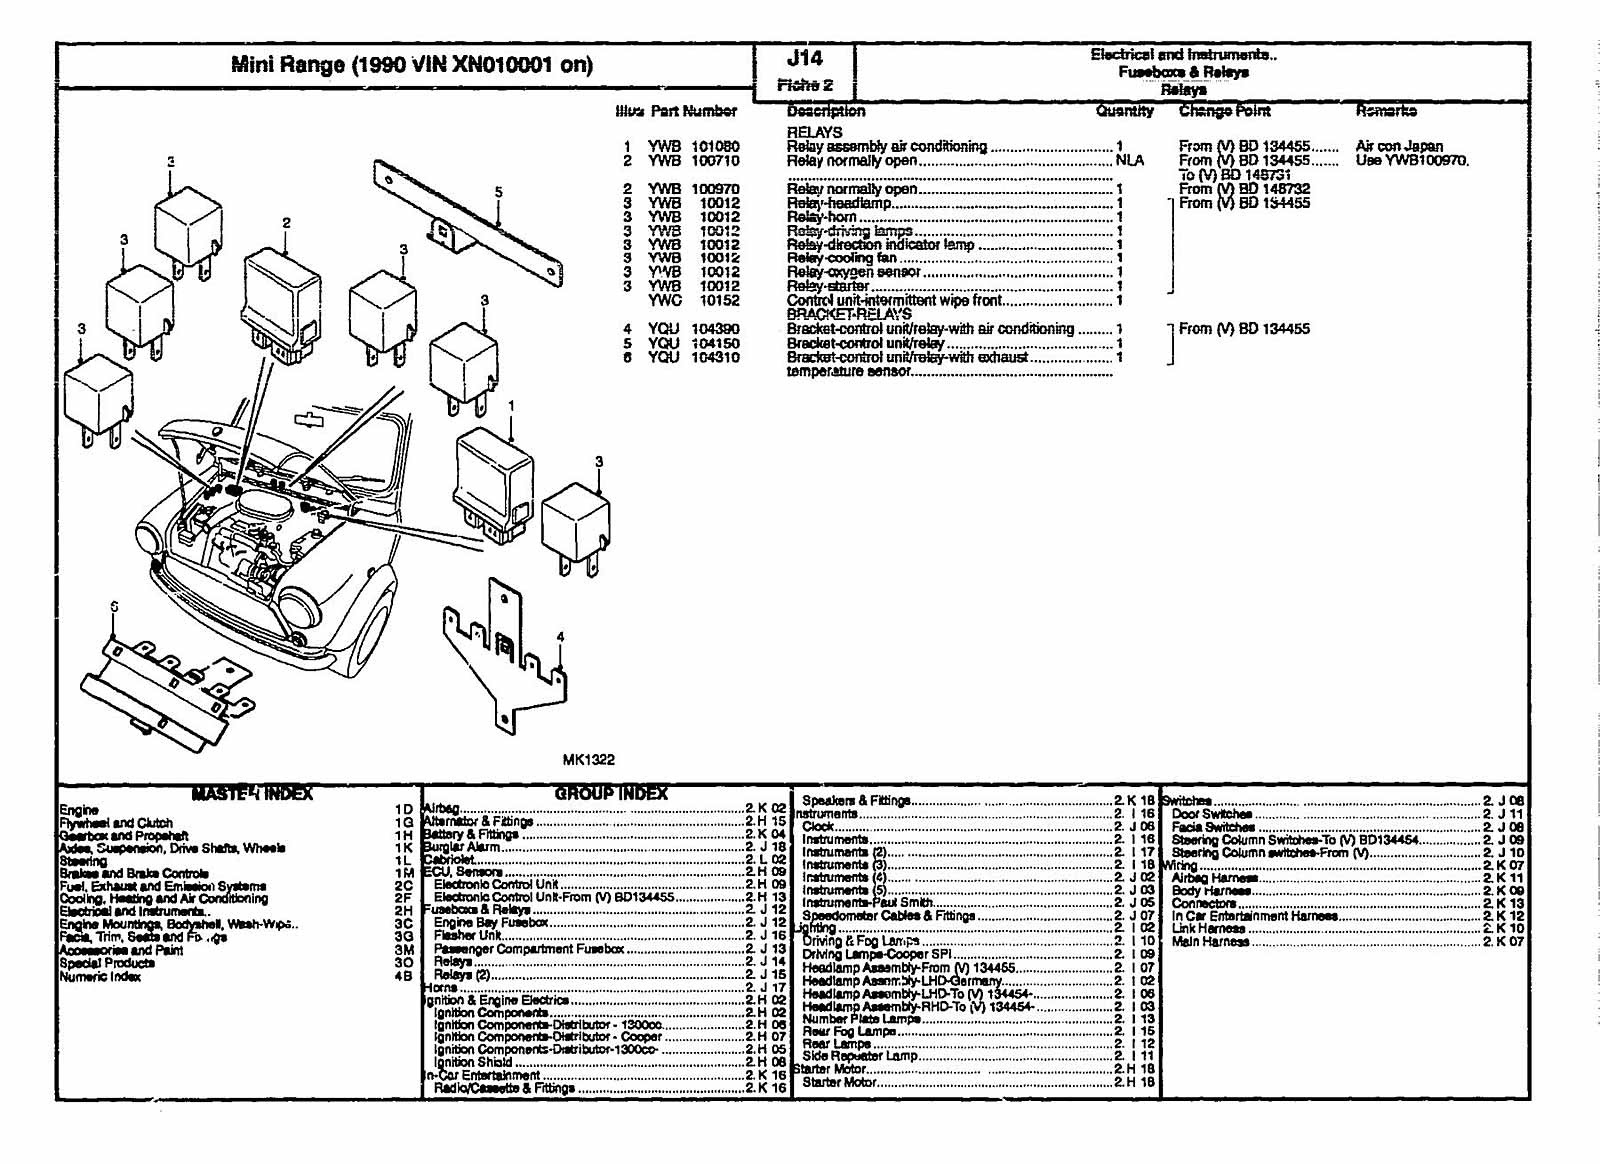 Classic Mini Fuse Box Wiring Diagram